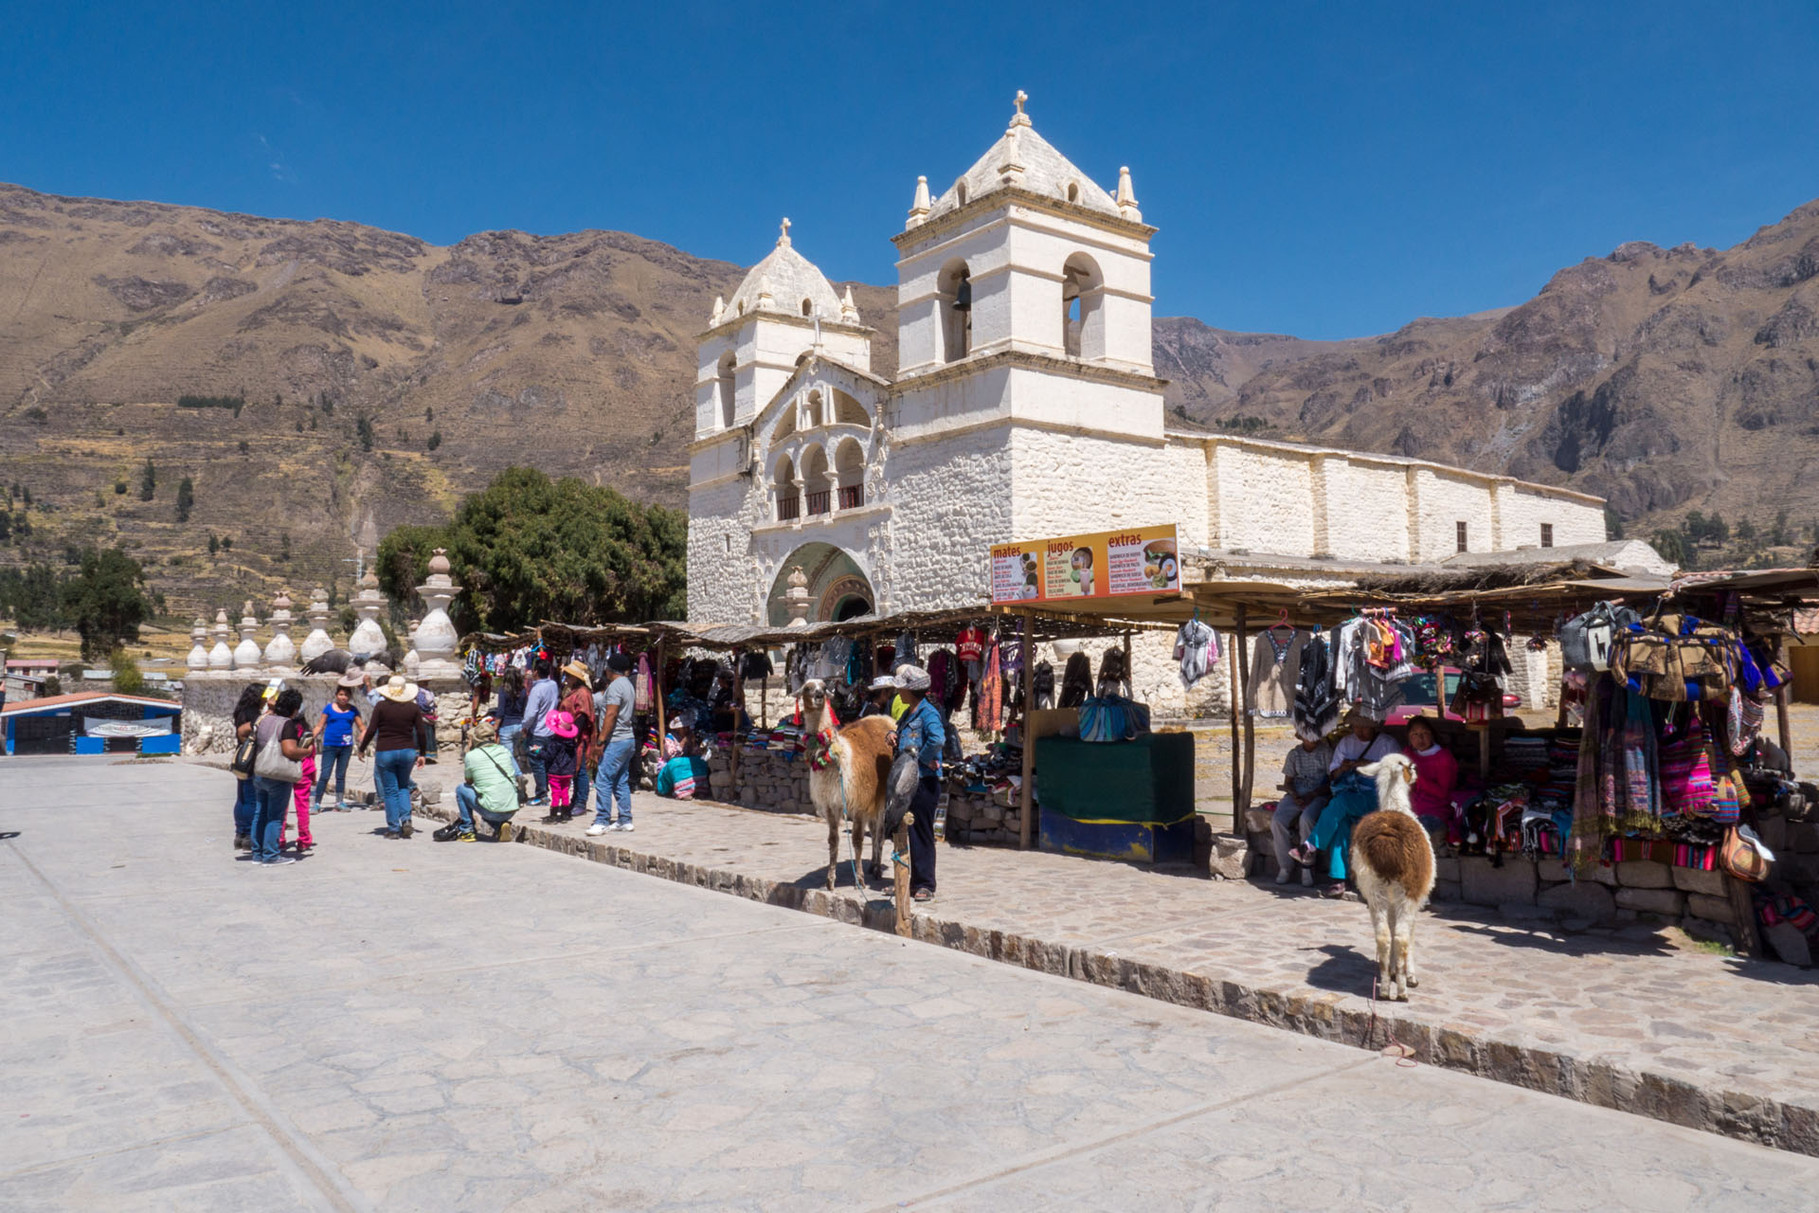 Tourist trap with Alpacas, Falcons and traditional market, Colca canyon